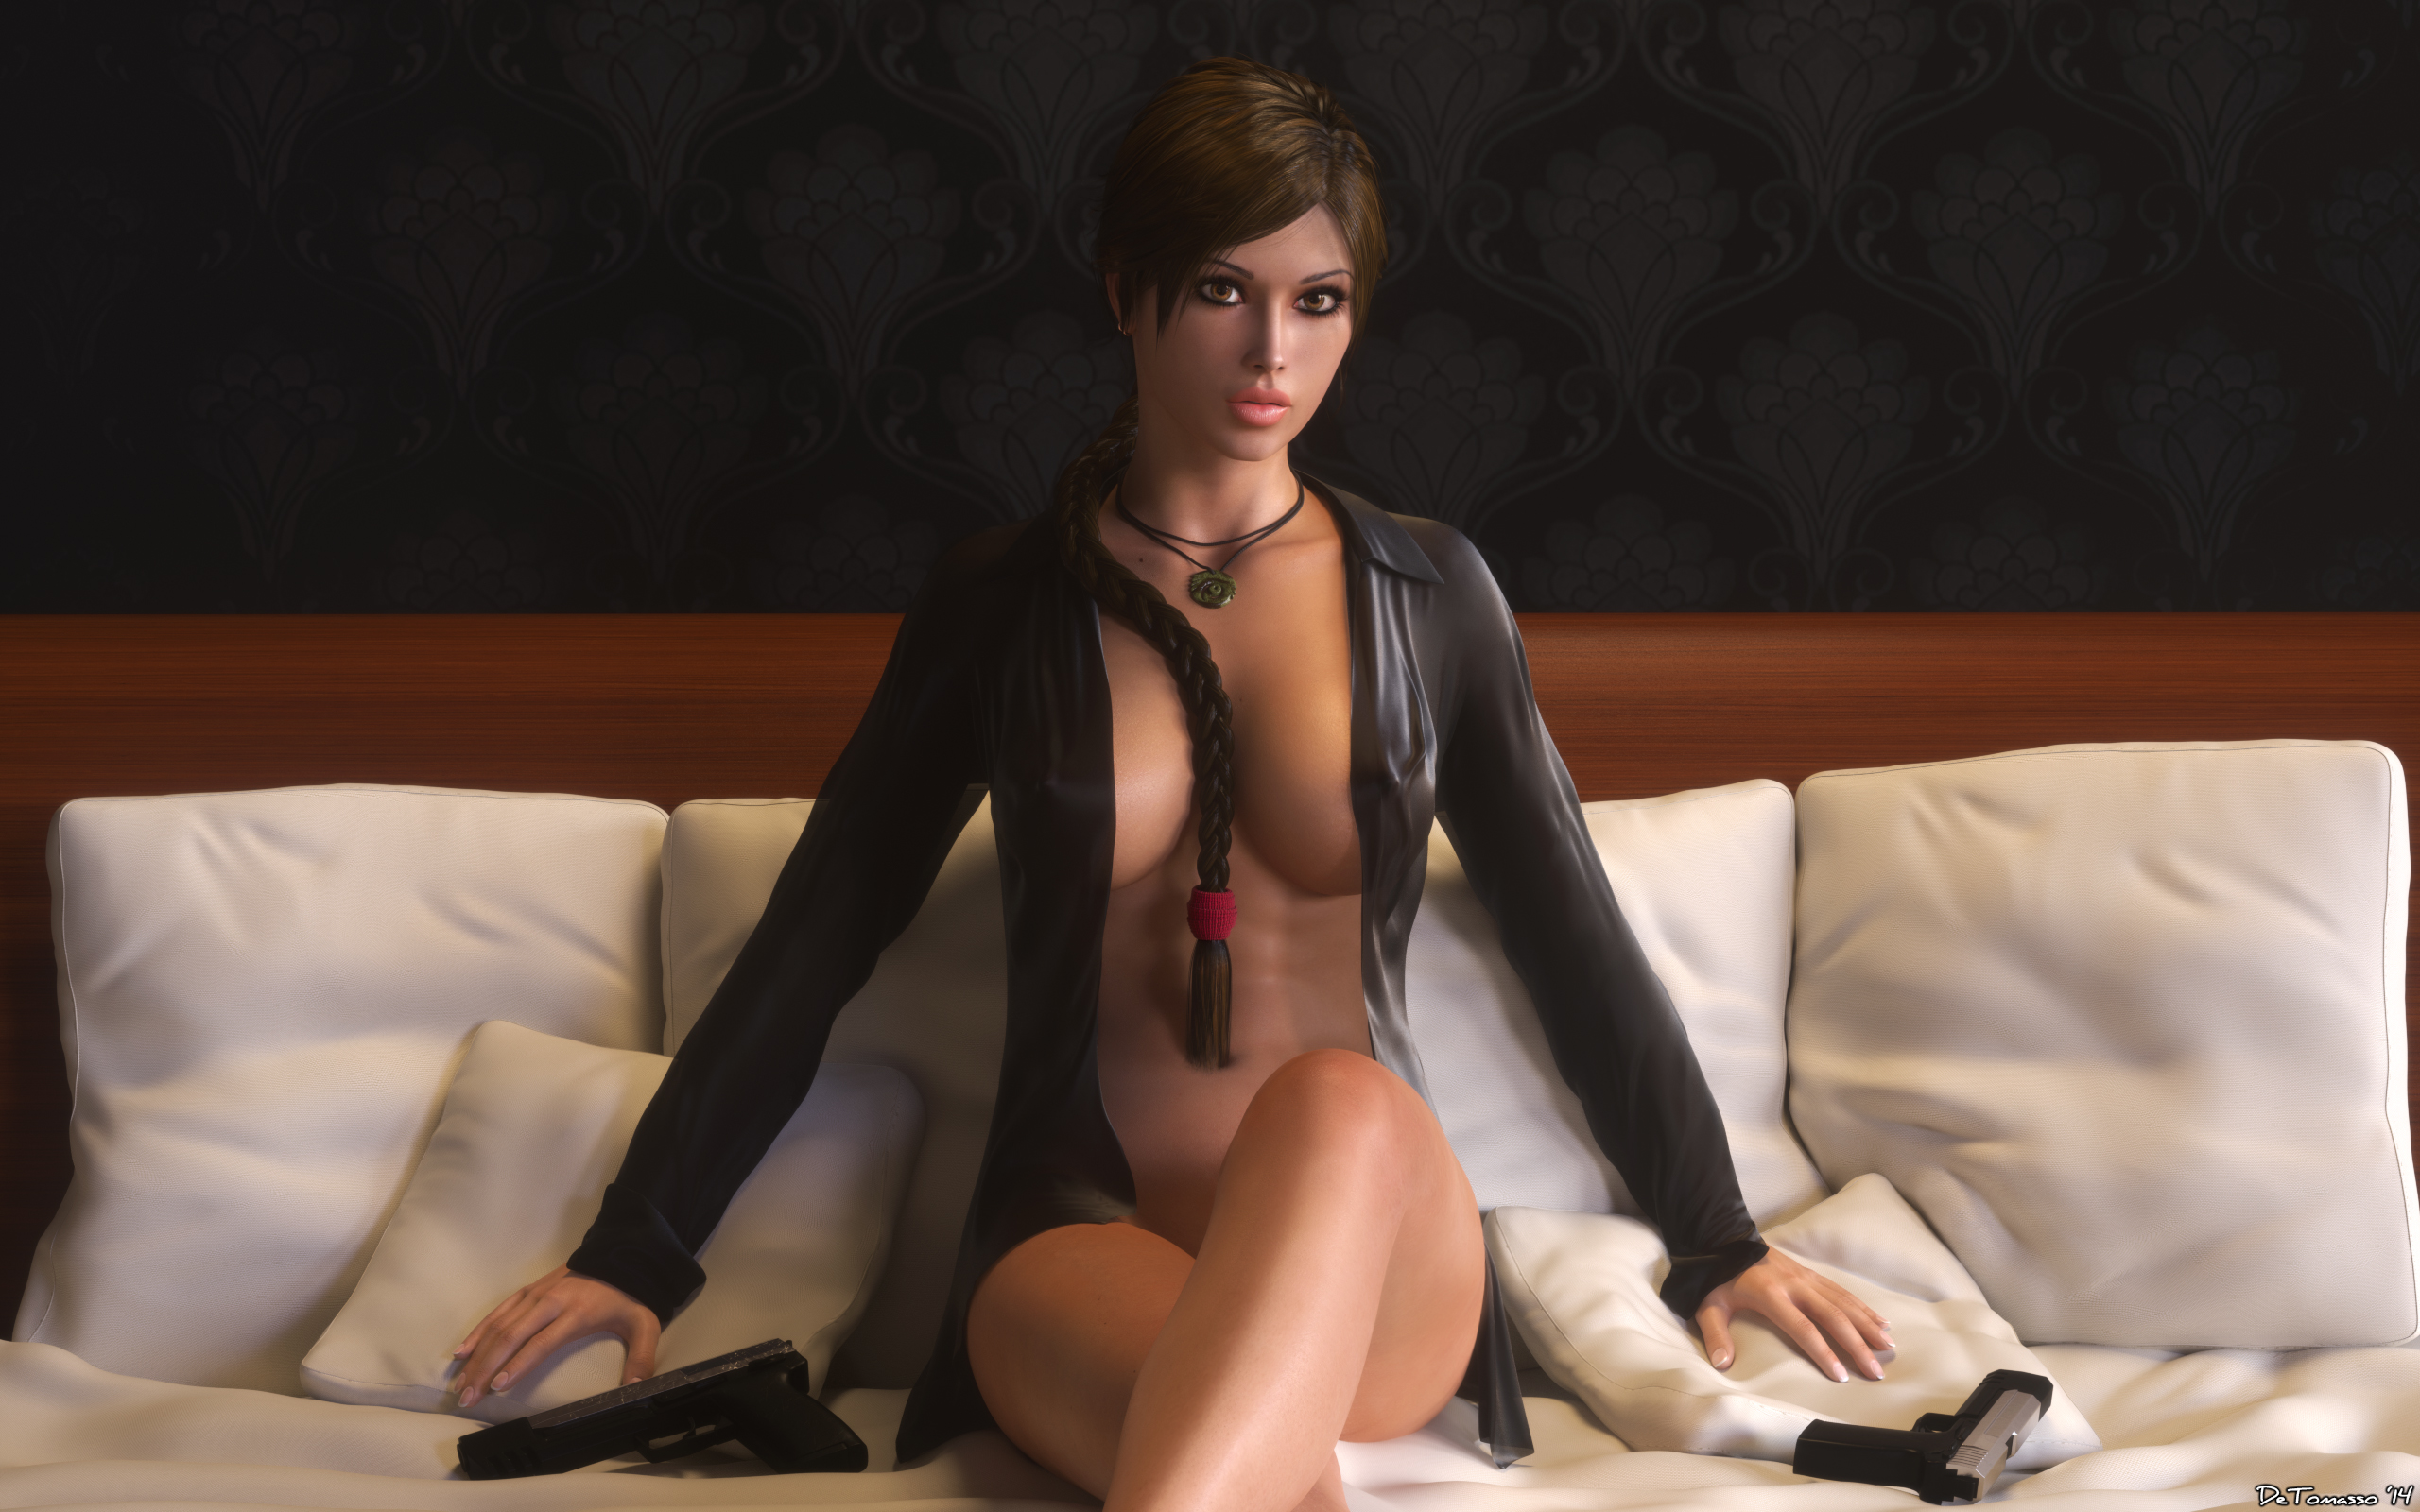 Lara croft 3d erotic erotica pictures